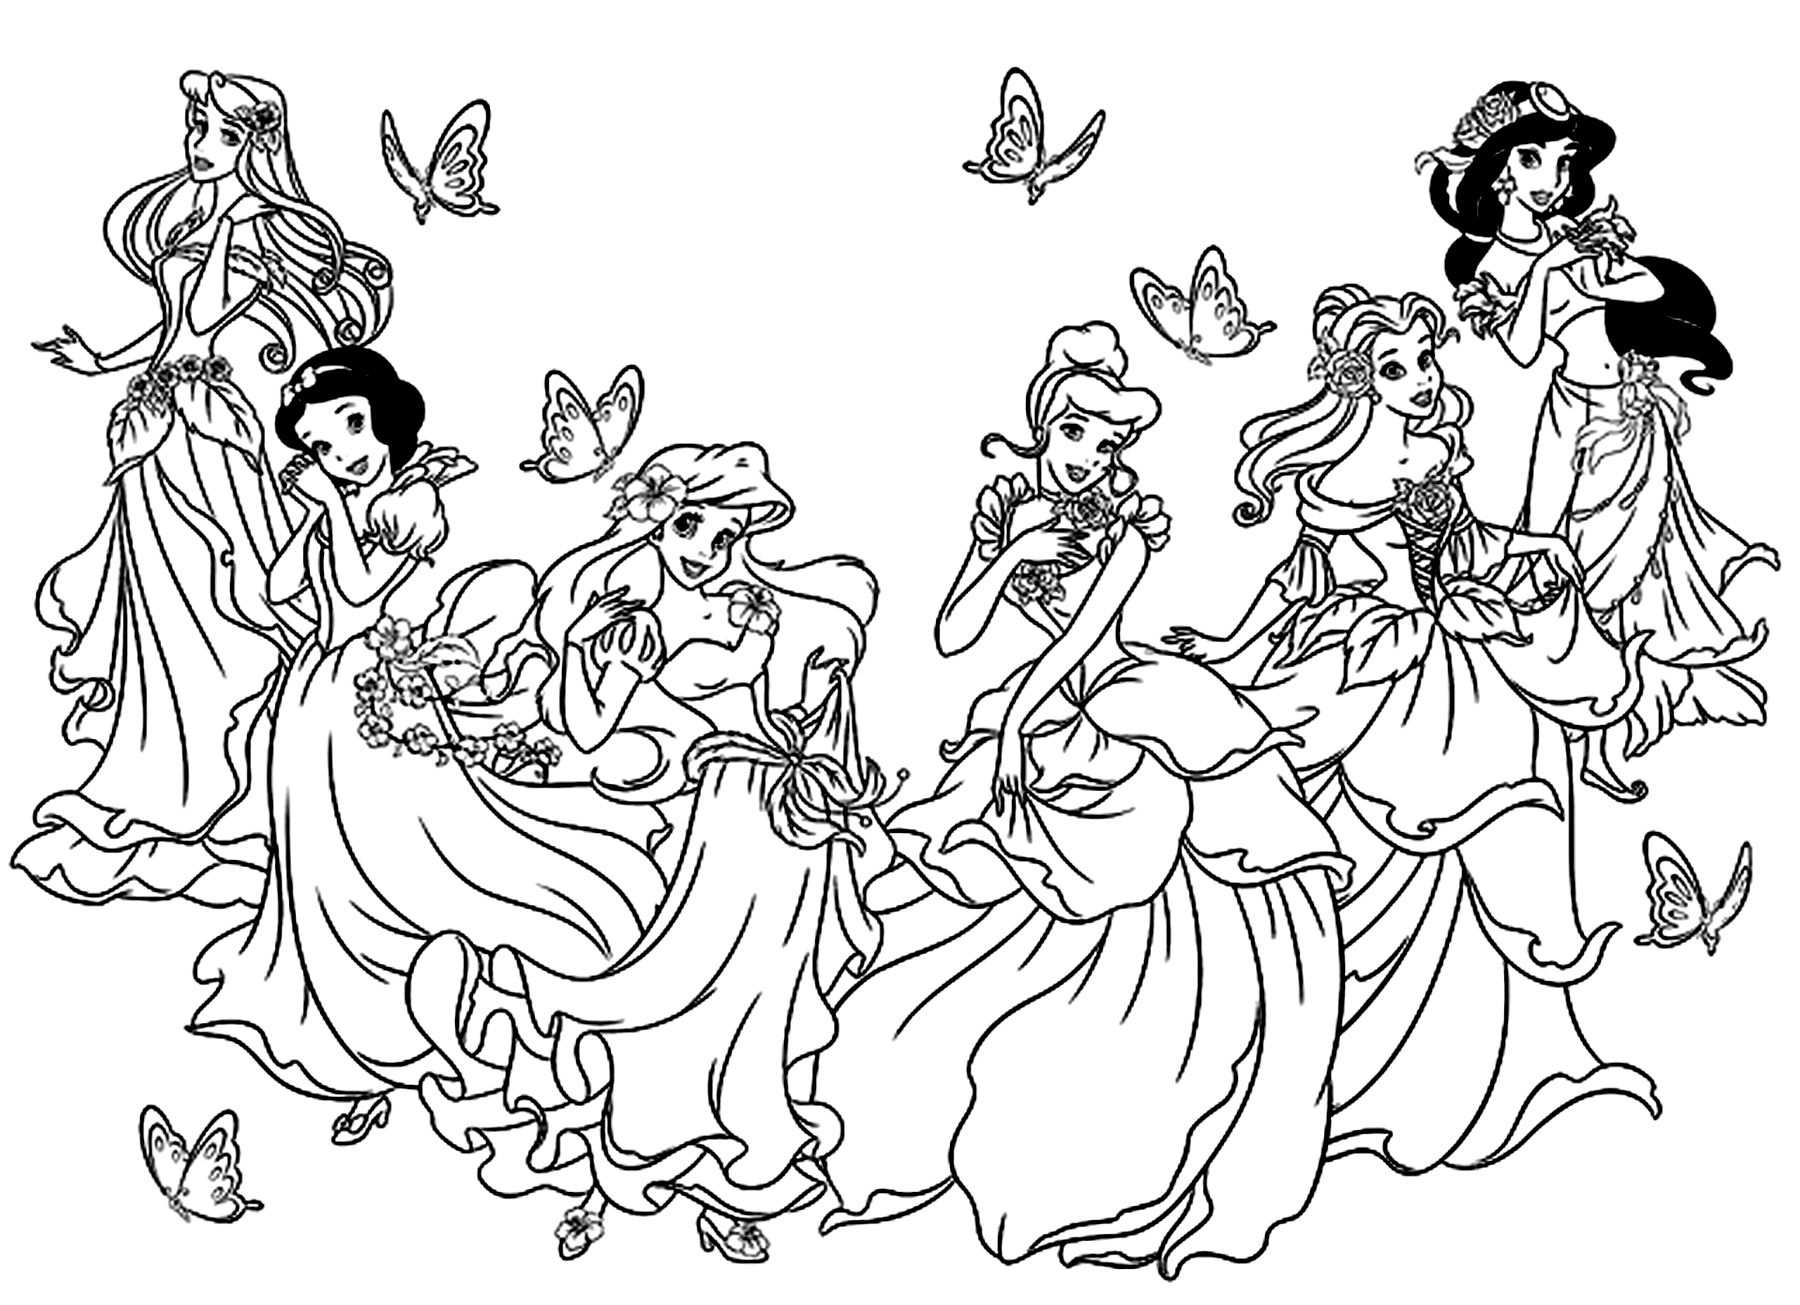 All Princesses Disney Return To Childhood Coloring Pages For